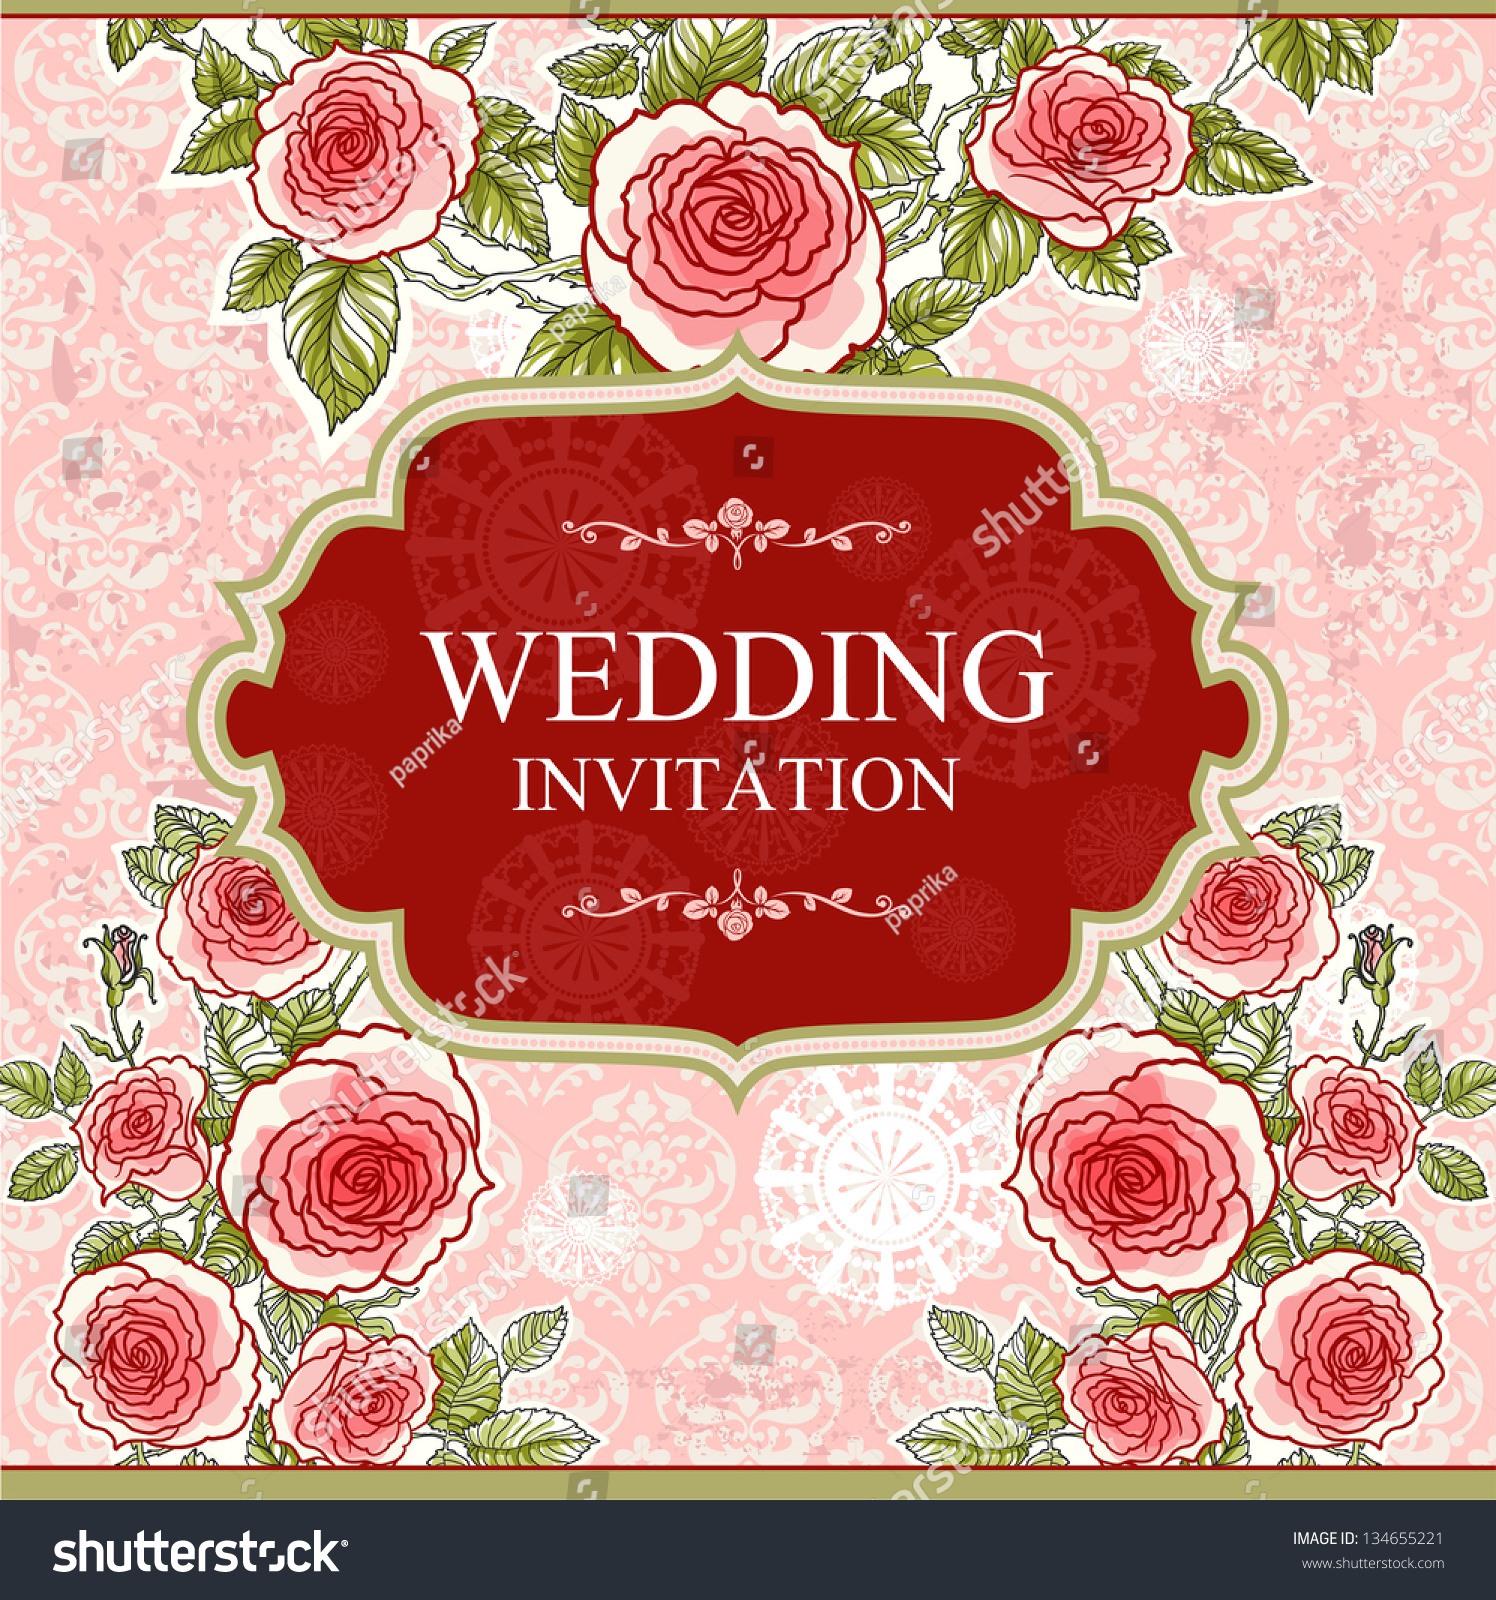 Wedding vintage background with roses with space for text | EZ Canvas